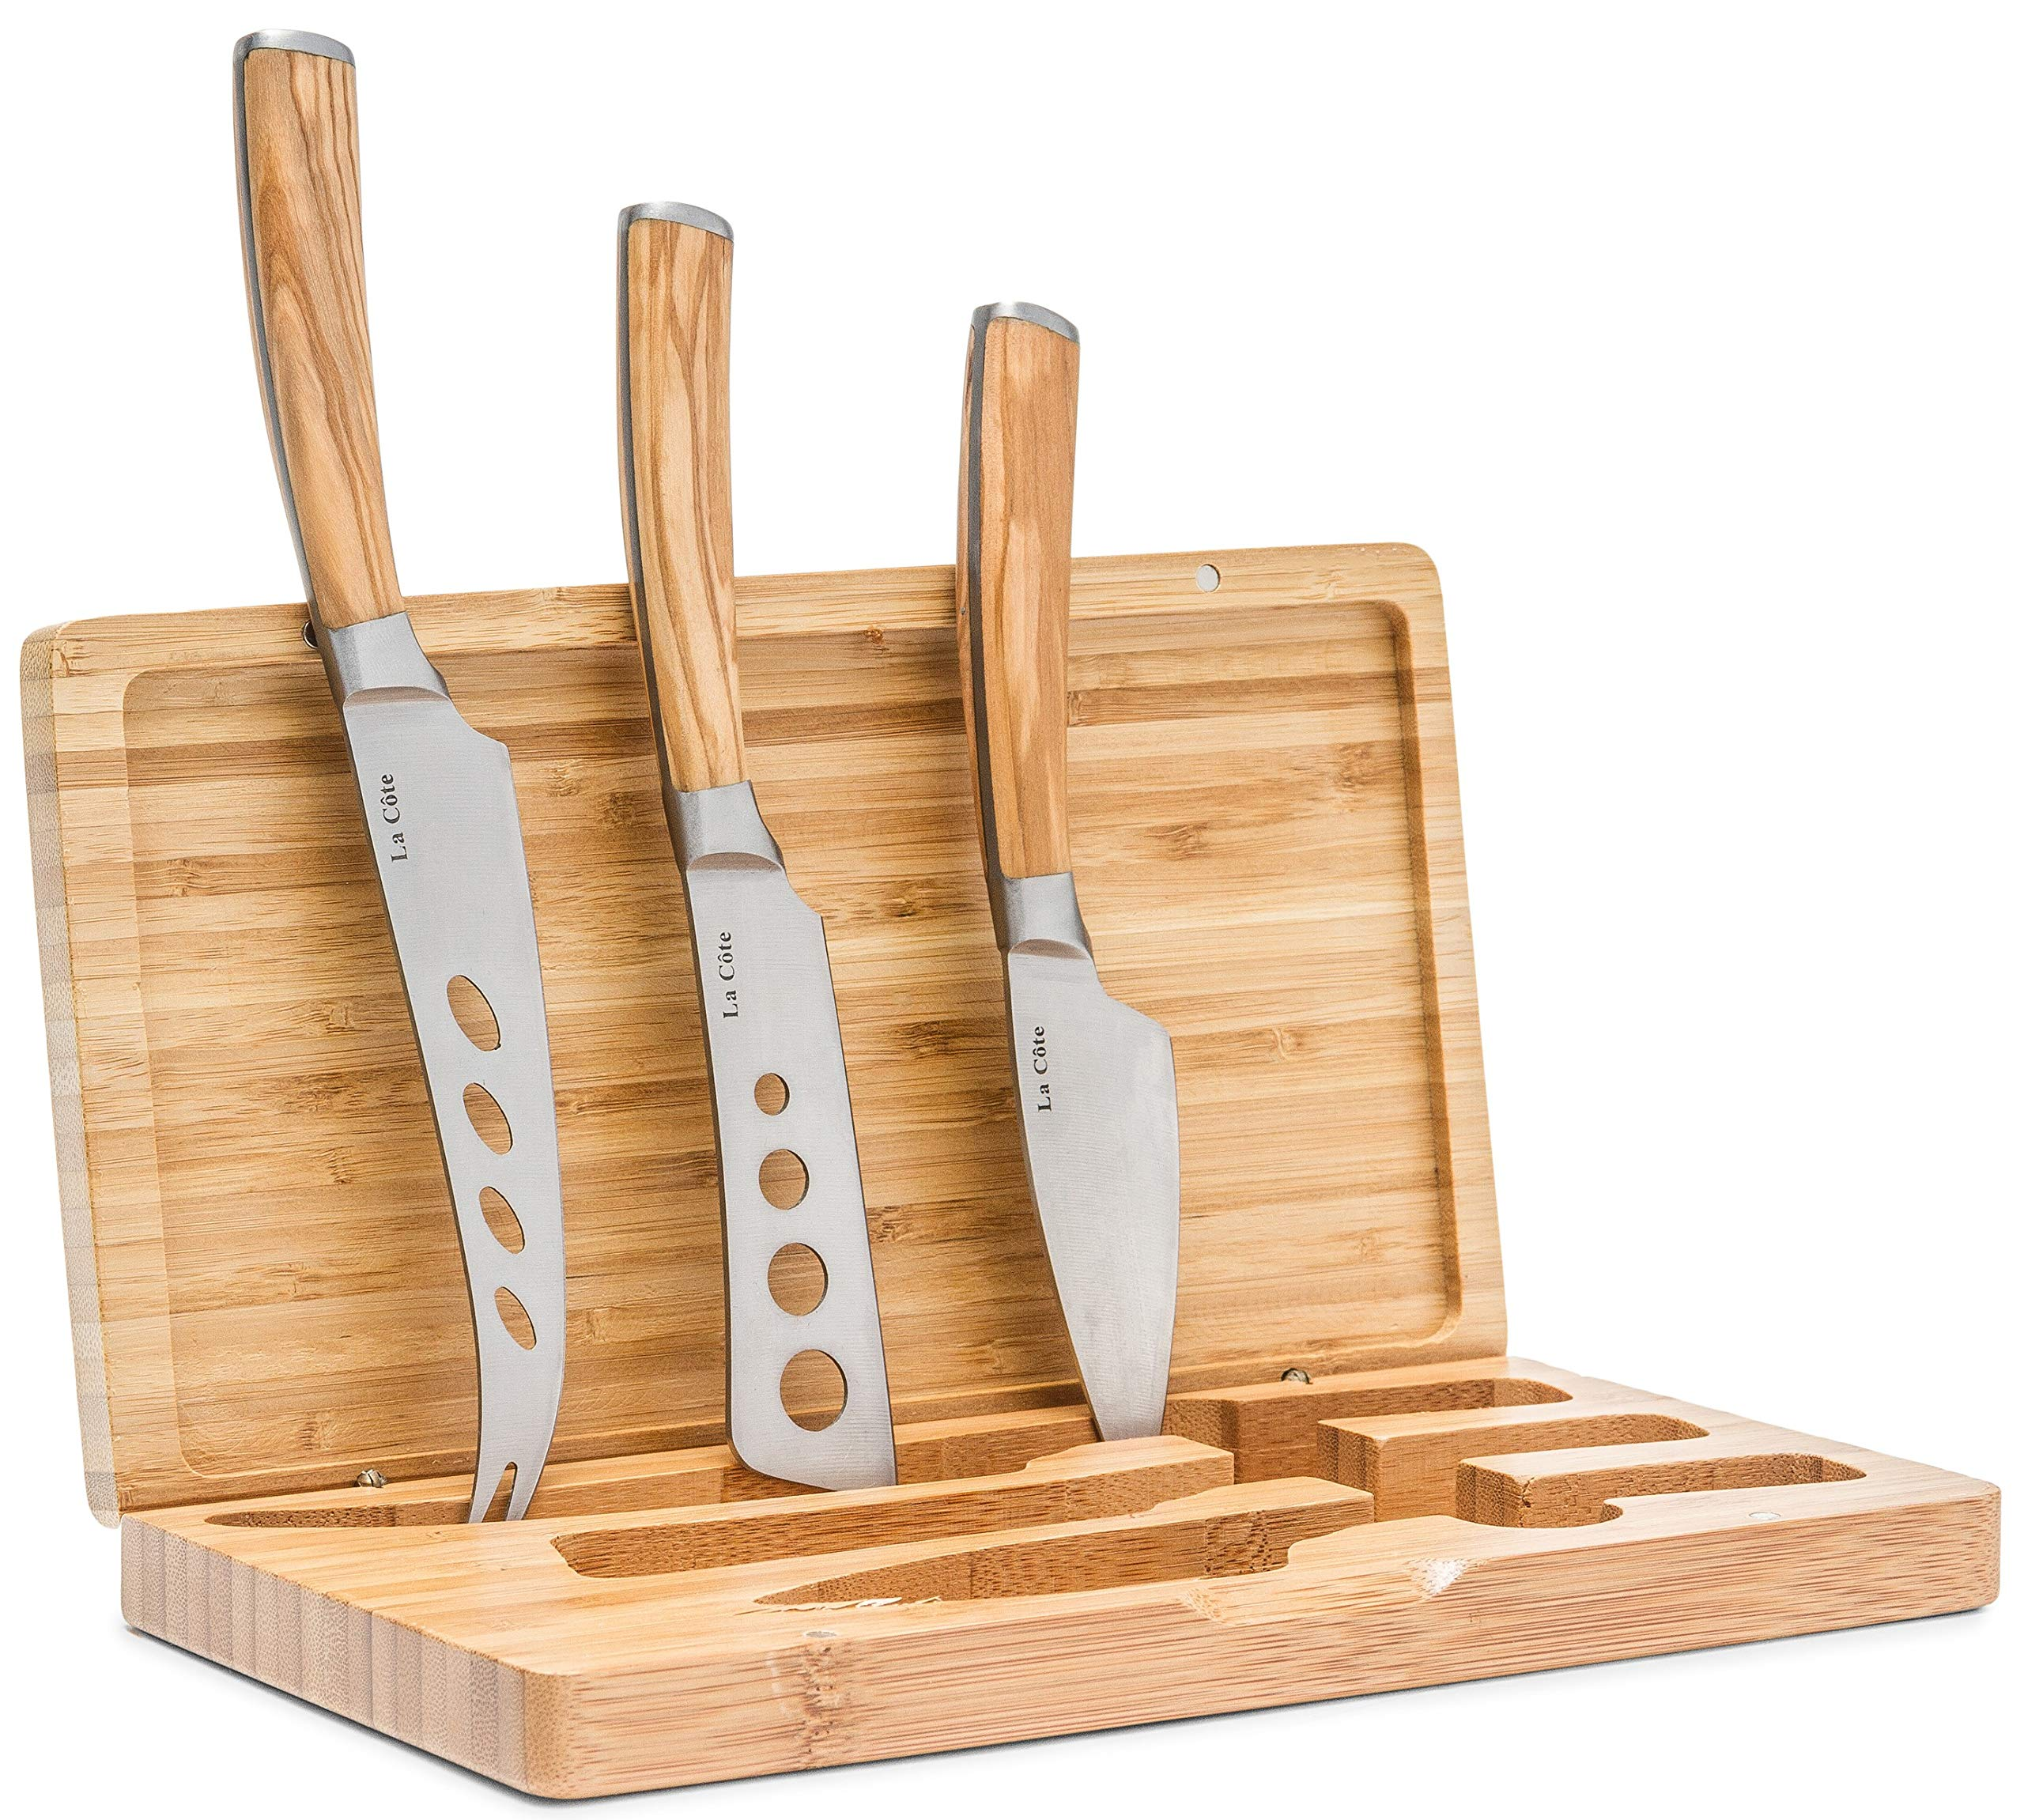 La Cote Olive Wood Cheese Knives Set Servers Accessories (3 Piece Cheese Knife Set In Bamboo box)